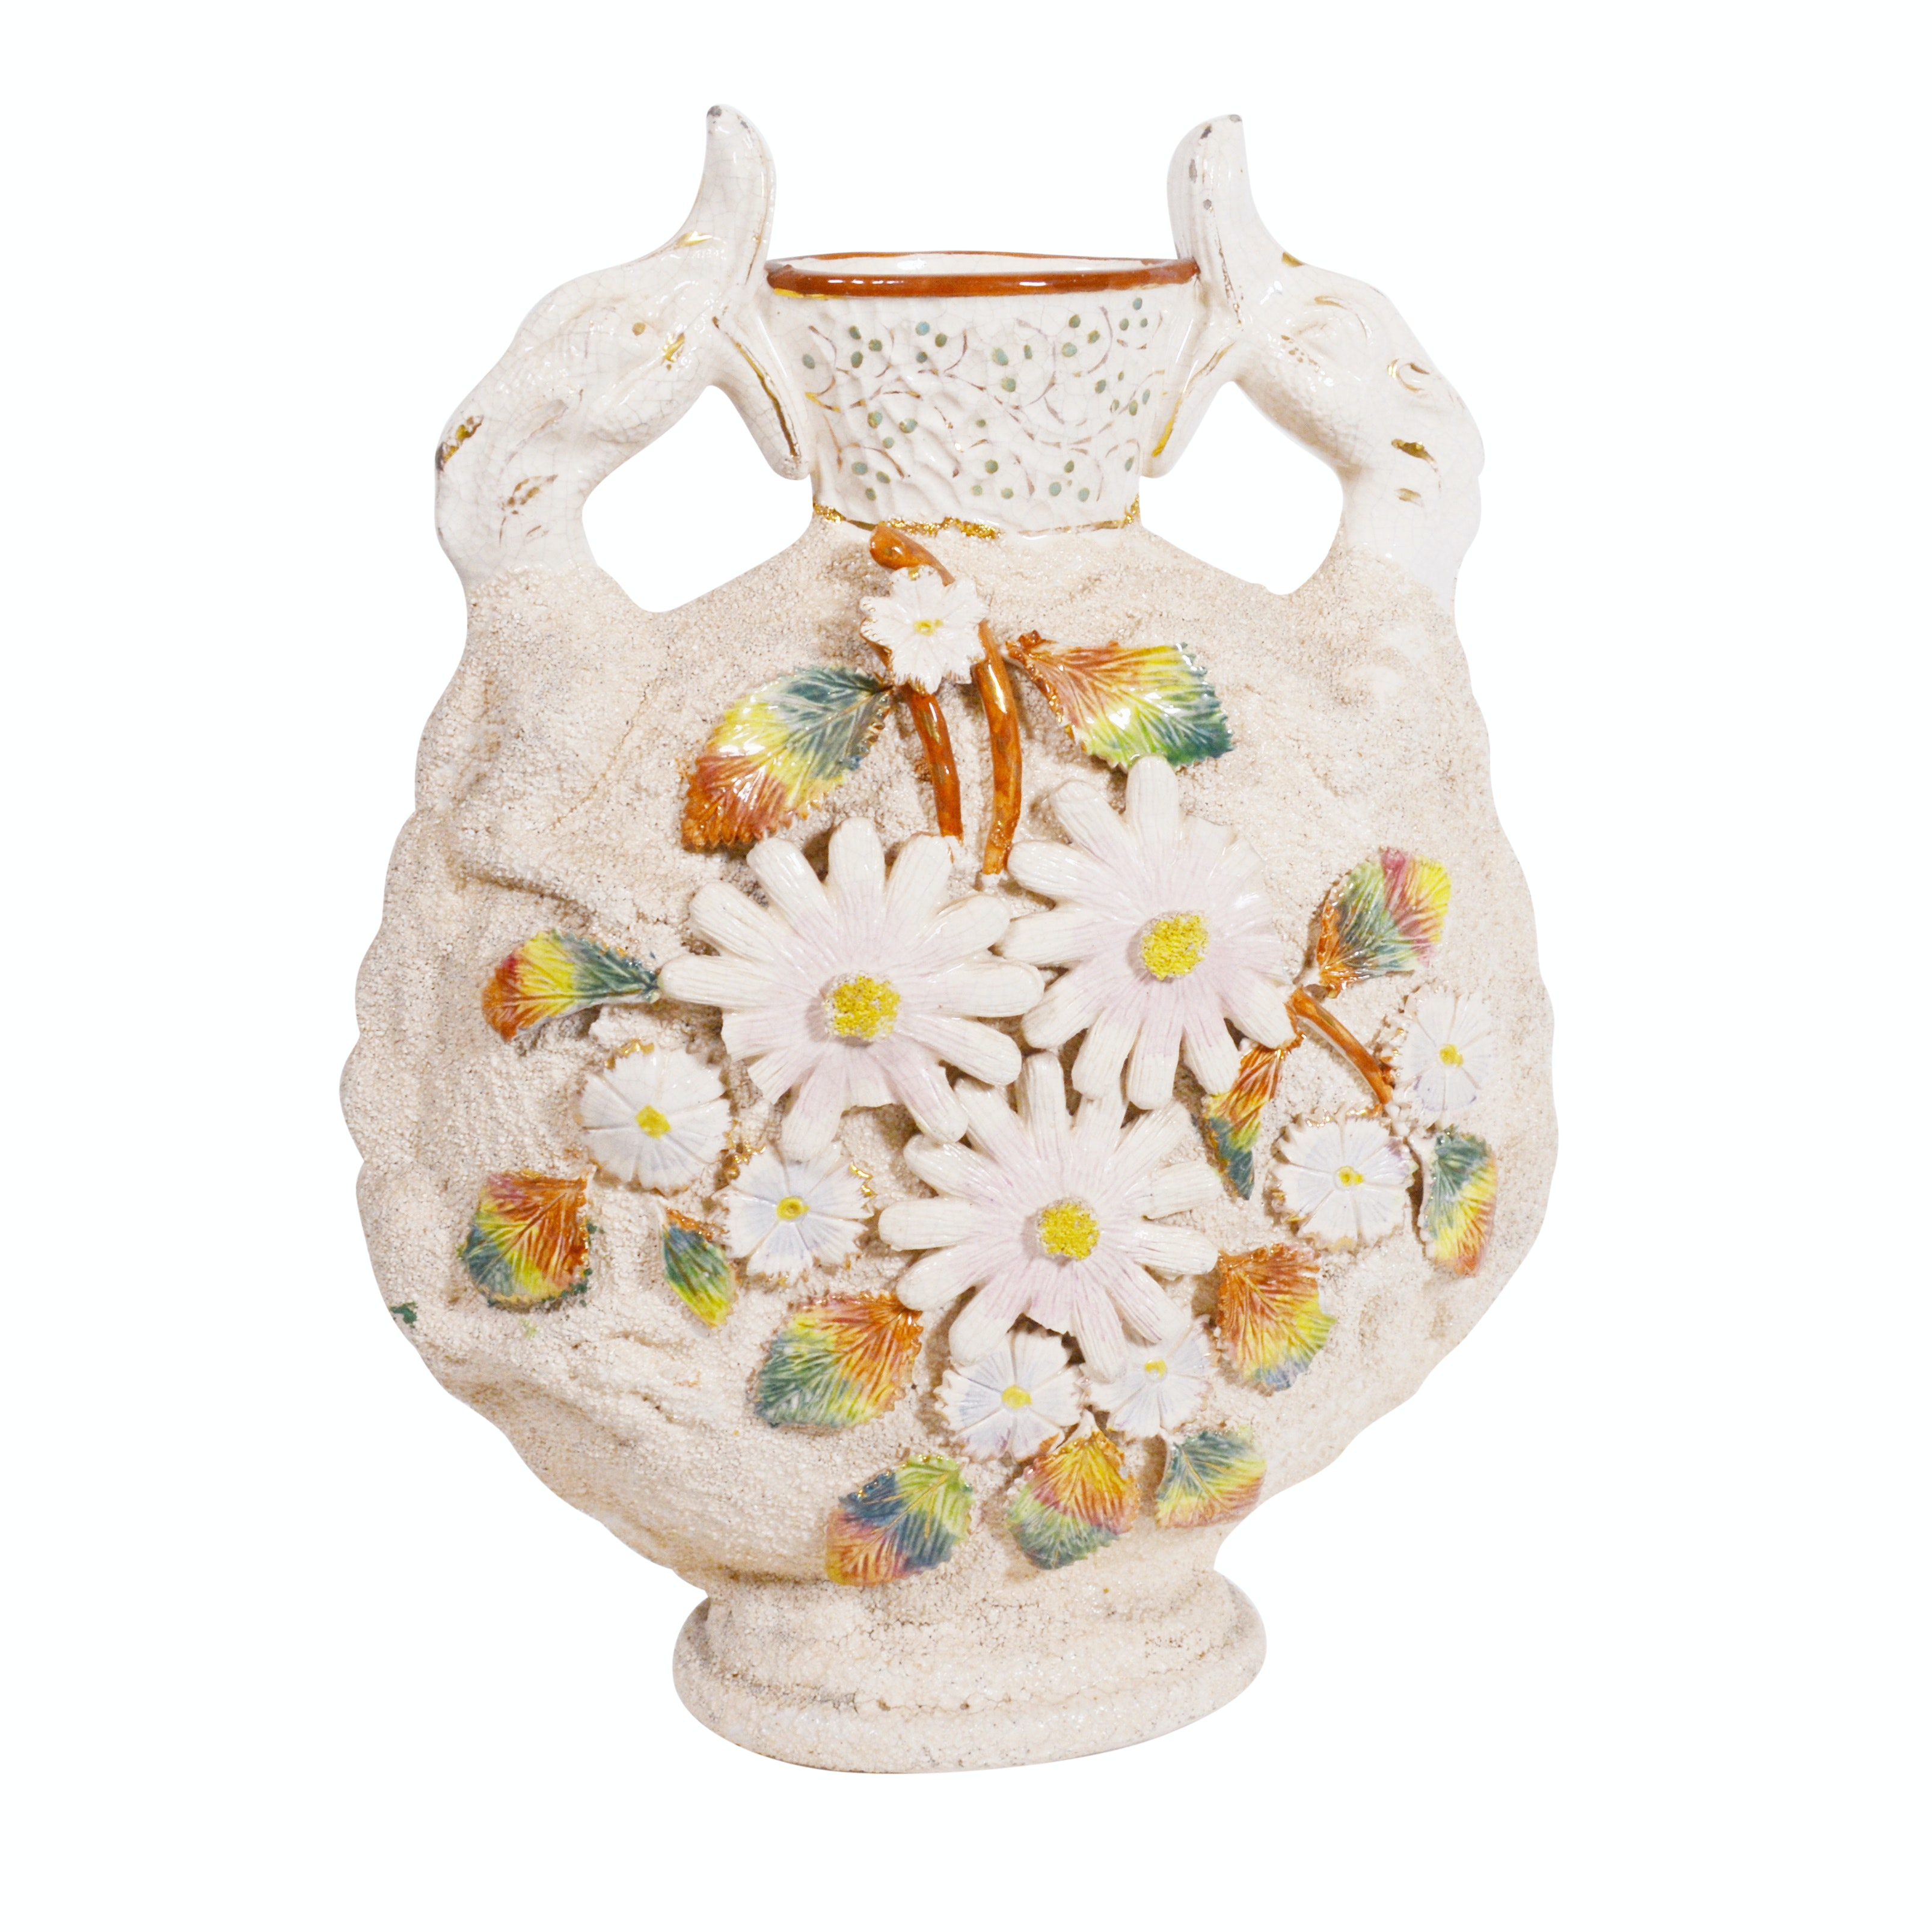 English Lizard and Floral Majolica Moon Flask Pottery Vase